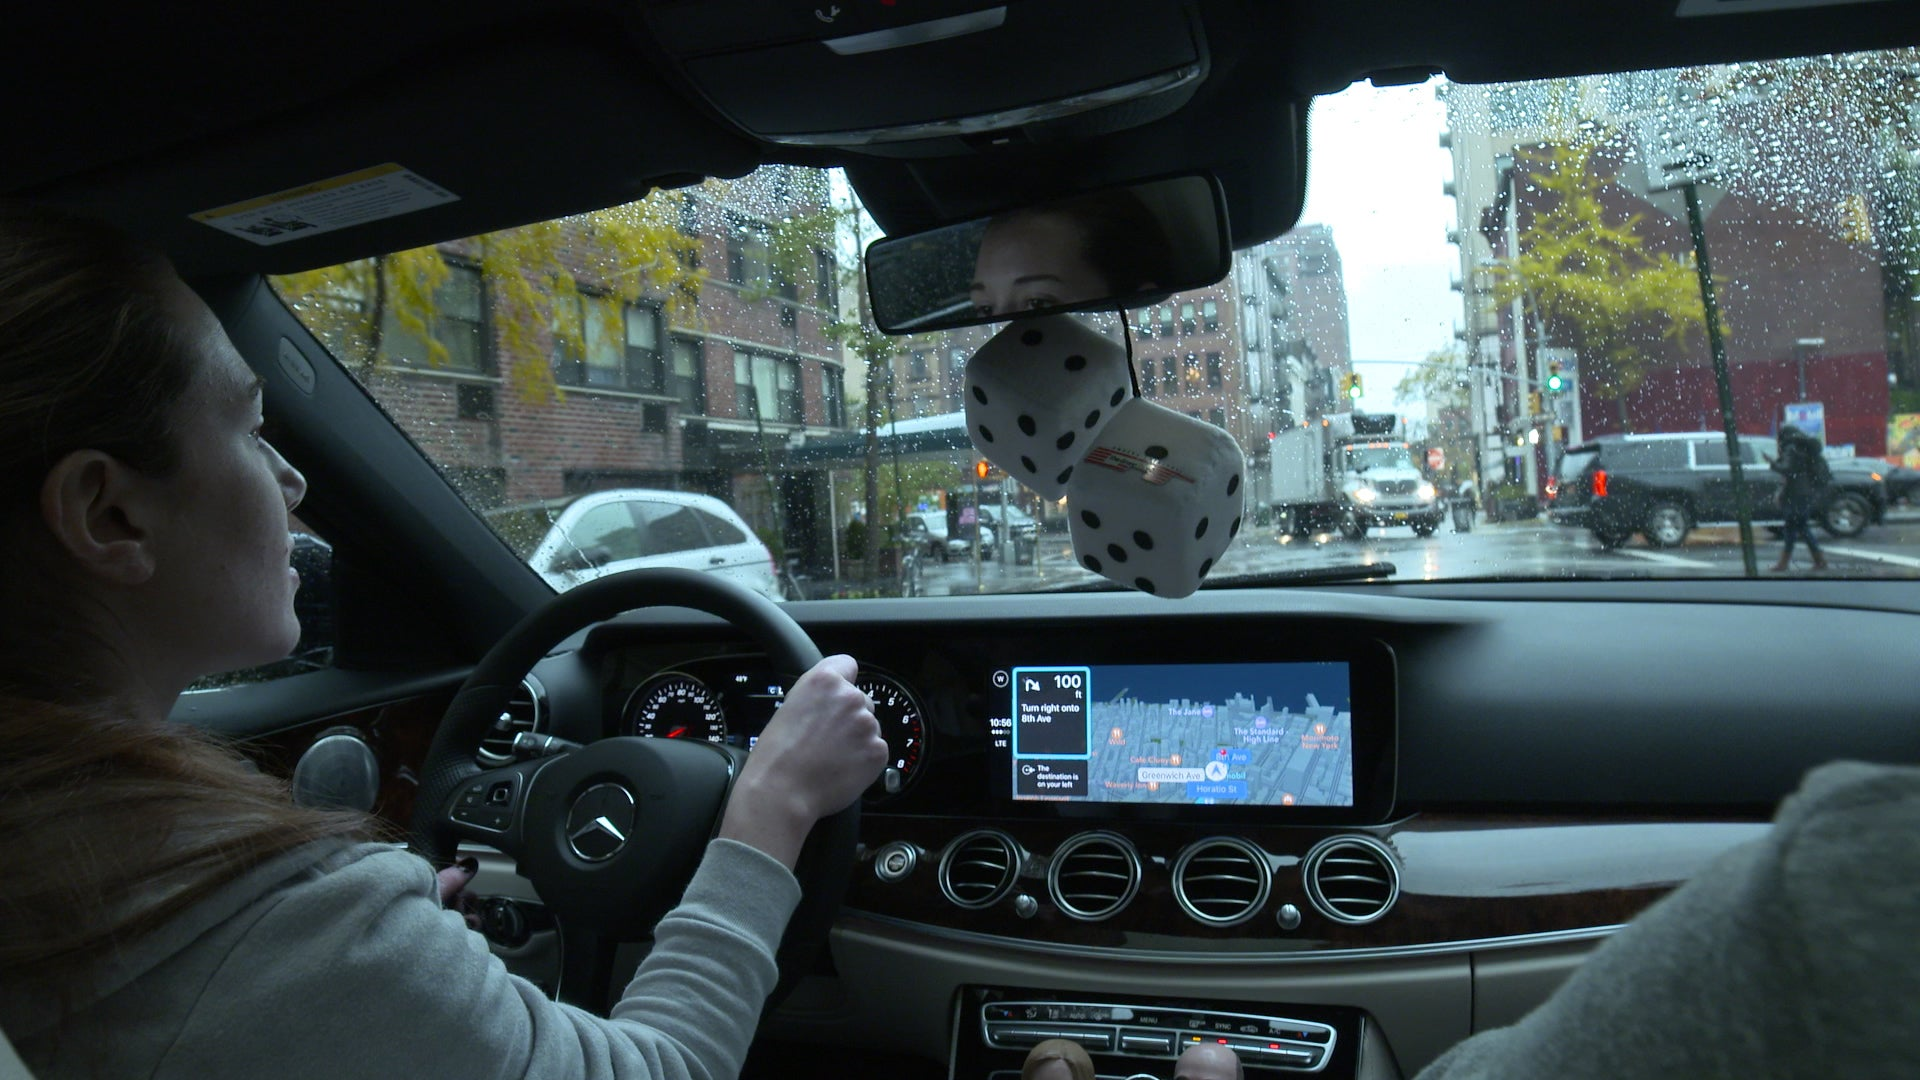 We tried Apple CarPlay and Android Auto—here's how they work